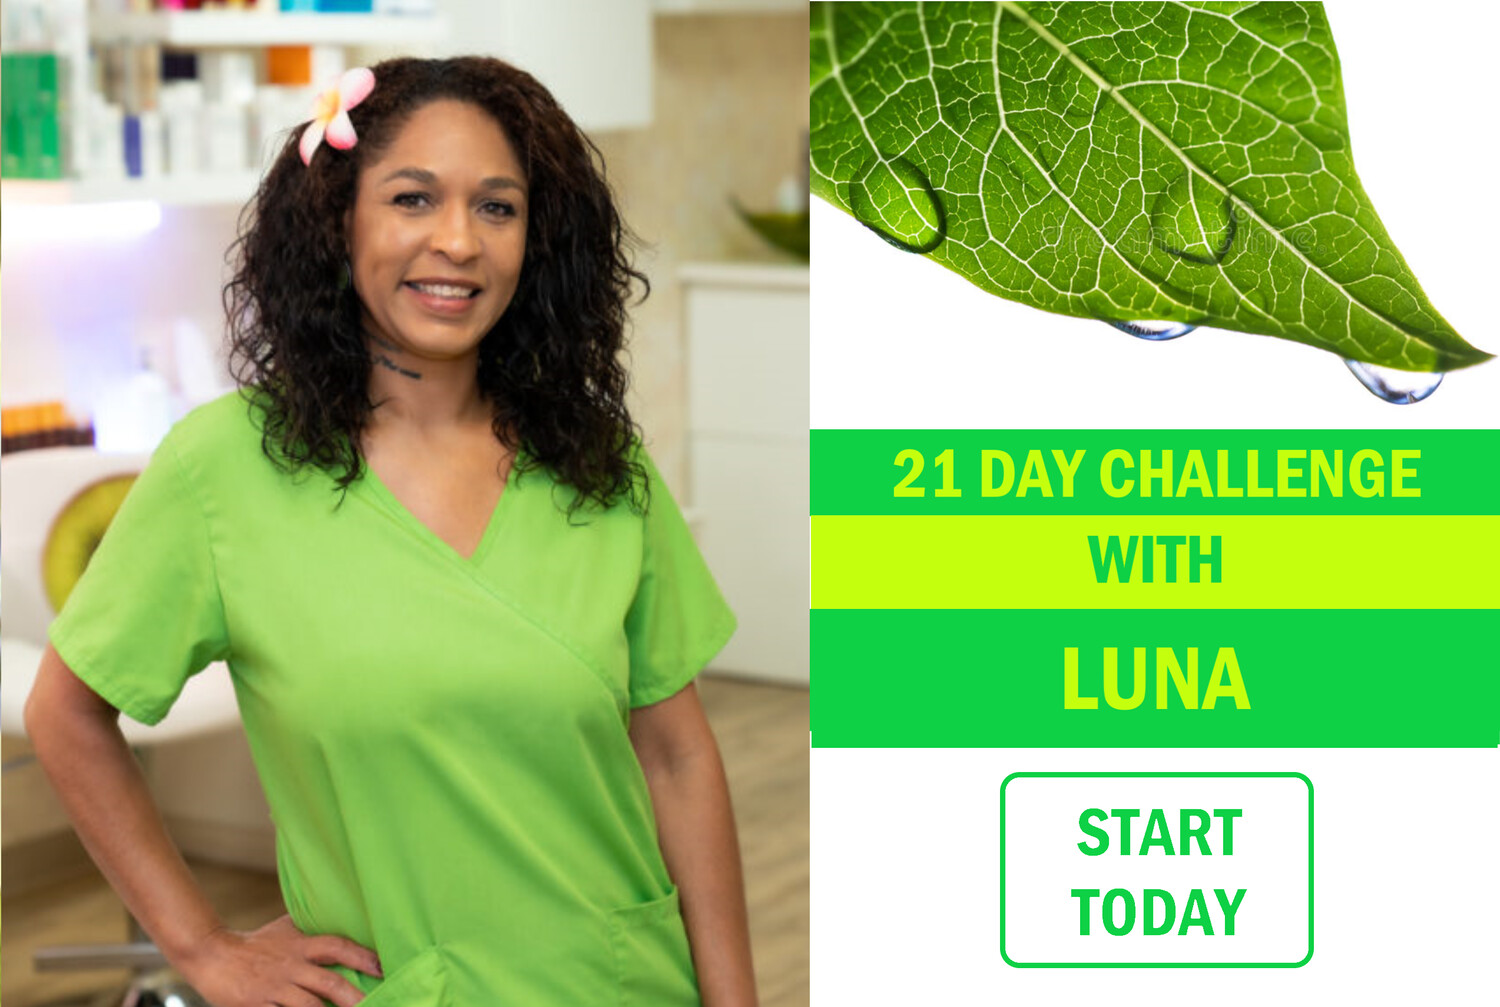 21 Day Challenge With Luna